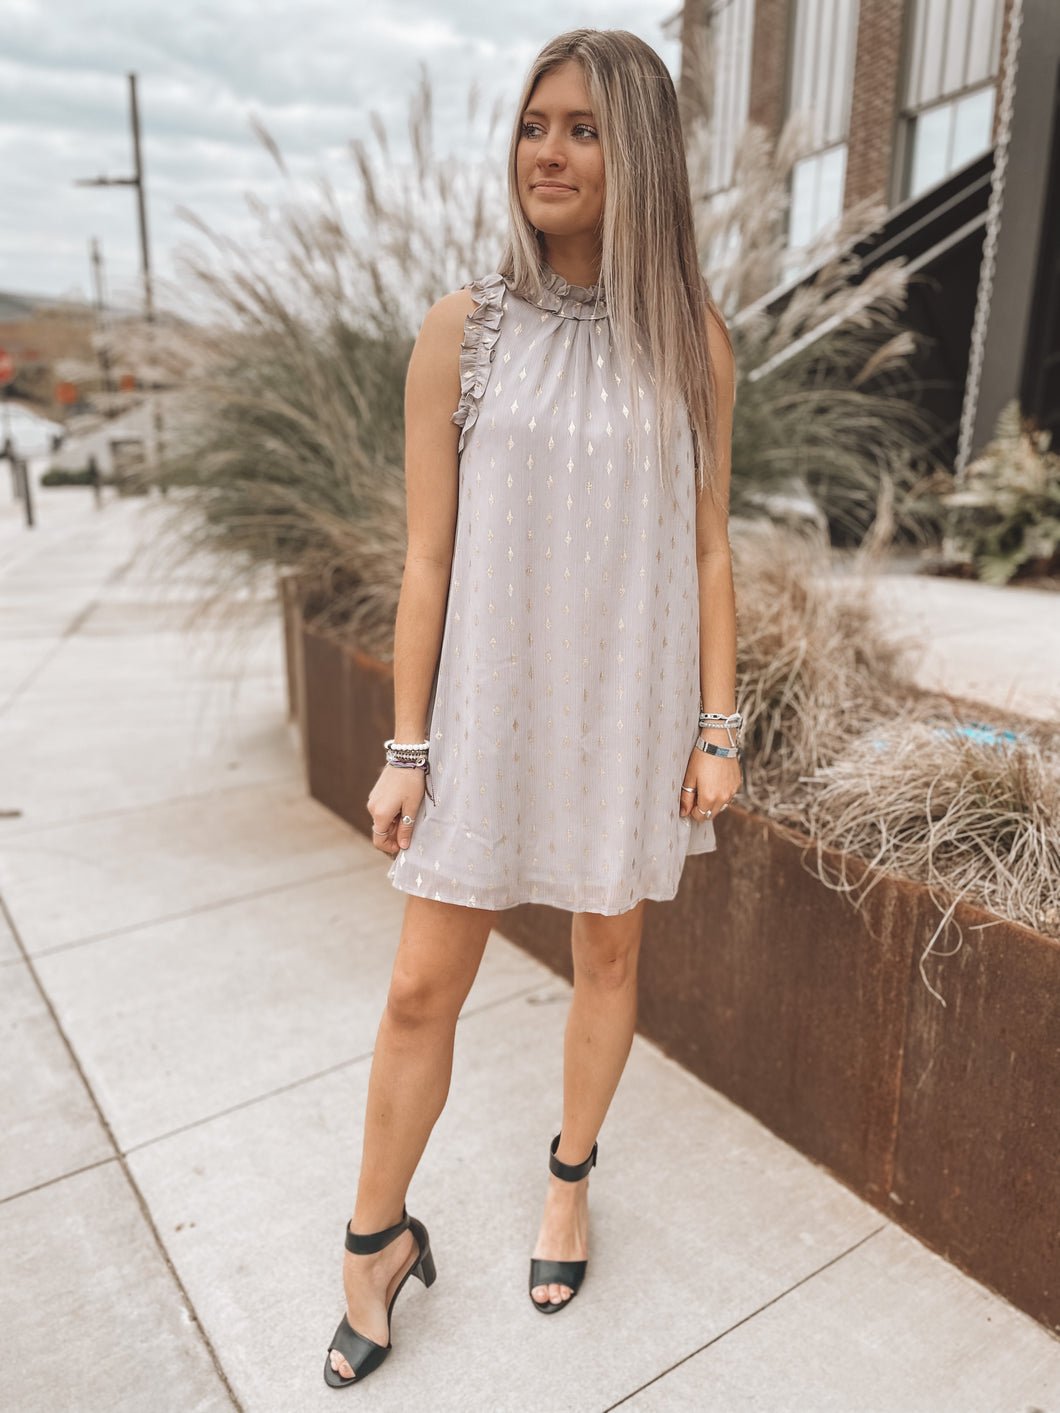 HOW DO YOU LIKE ME NOW DRESS - GREY